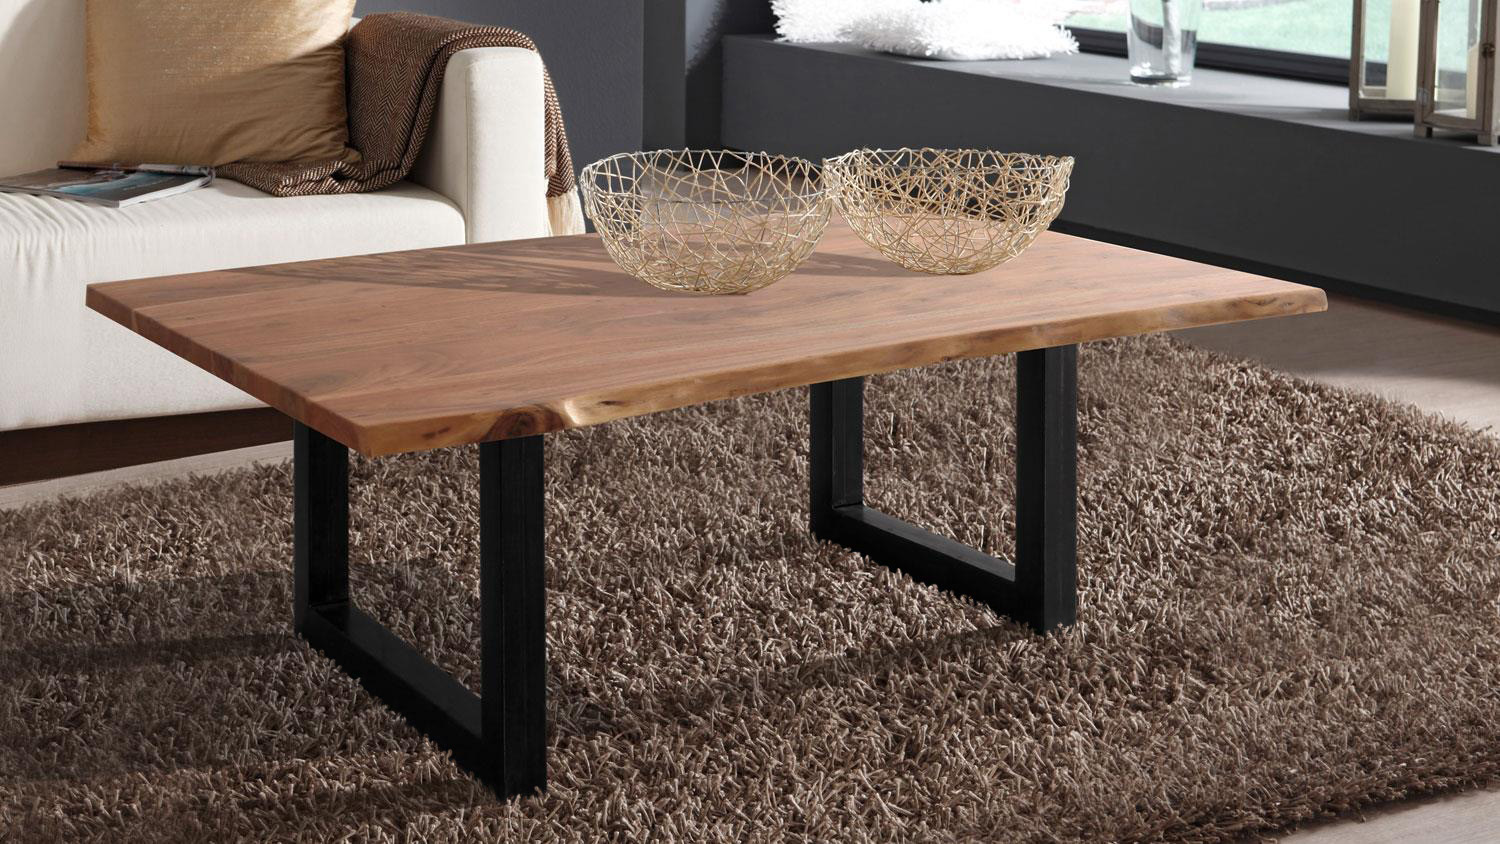 wolf m bel couchtisch baumkante 120 x 80 cm akazie natur live edge. Black Bedroom Furniture Sets. Home Design Ideas